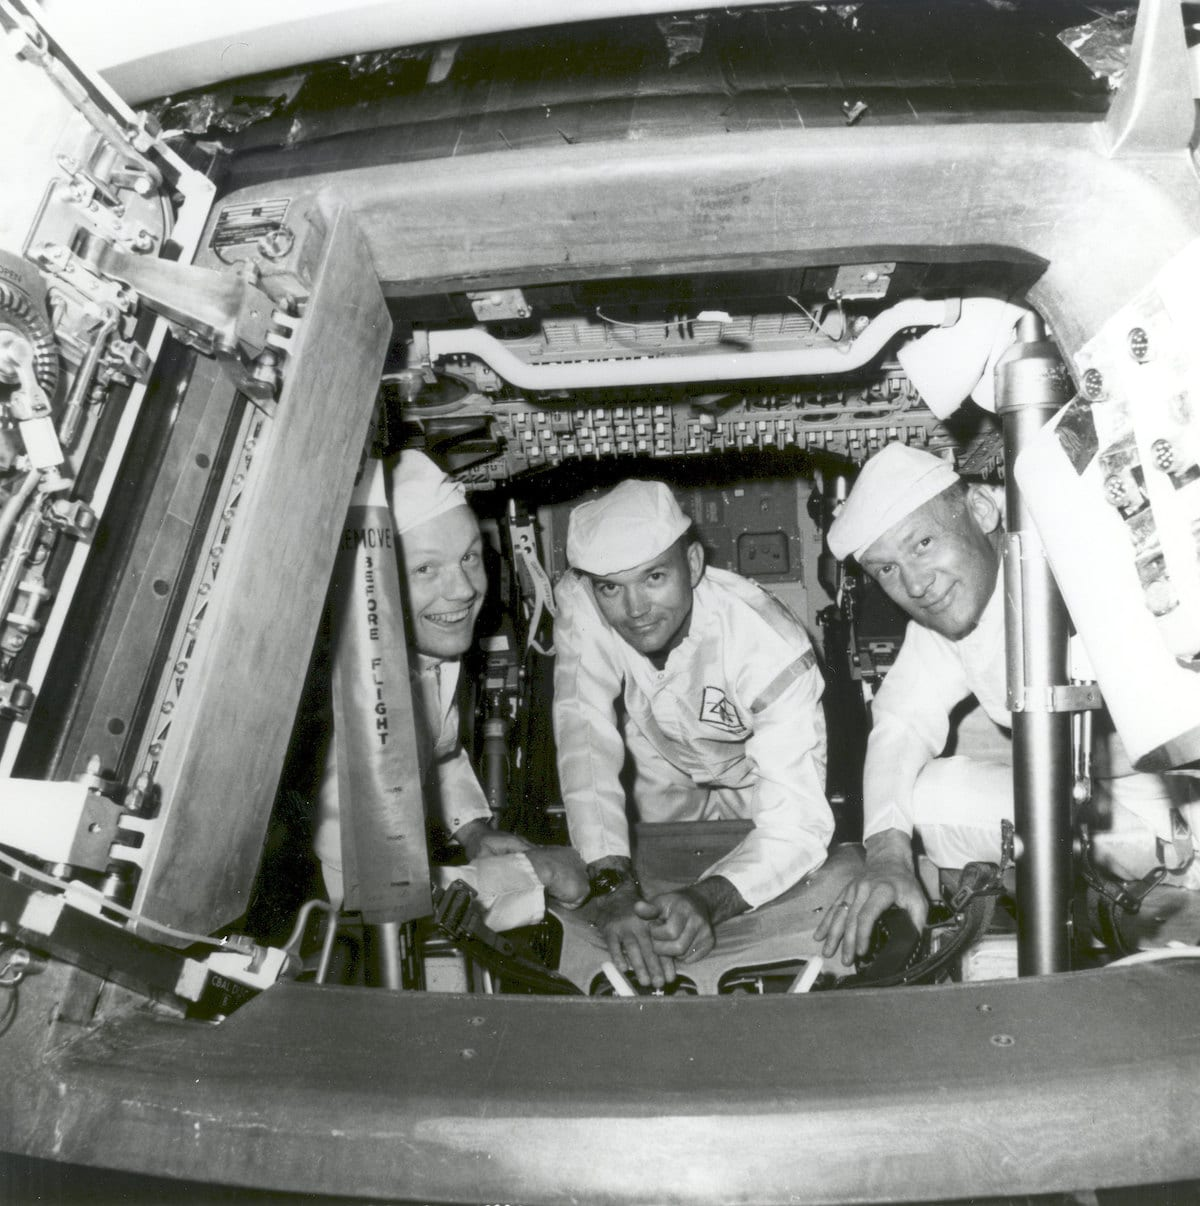 Apollo 11 Crew Conduct Checks in the Command Module